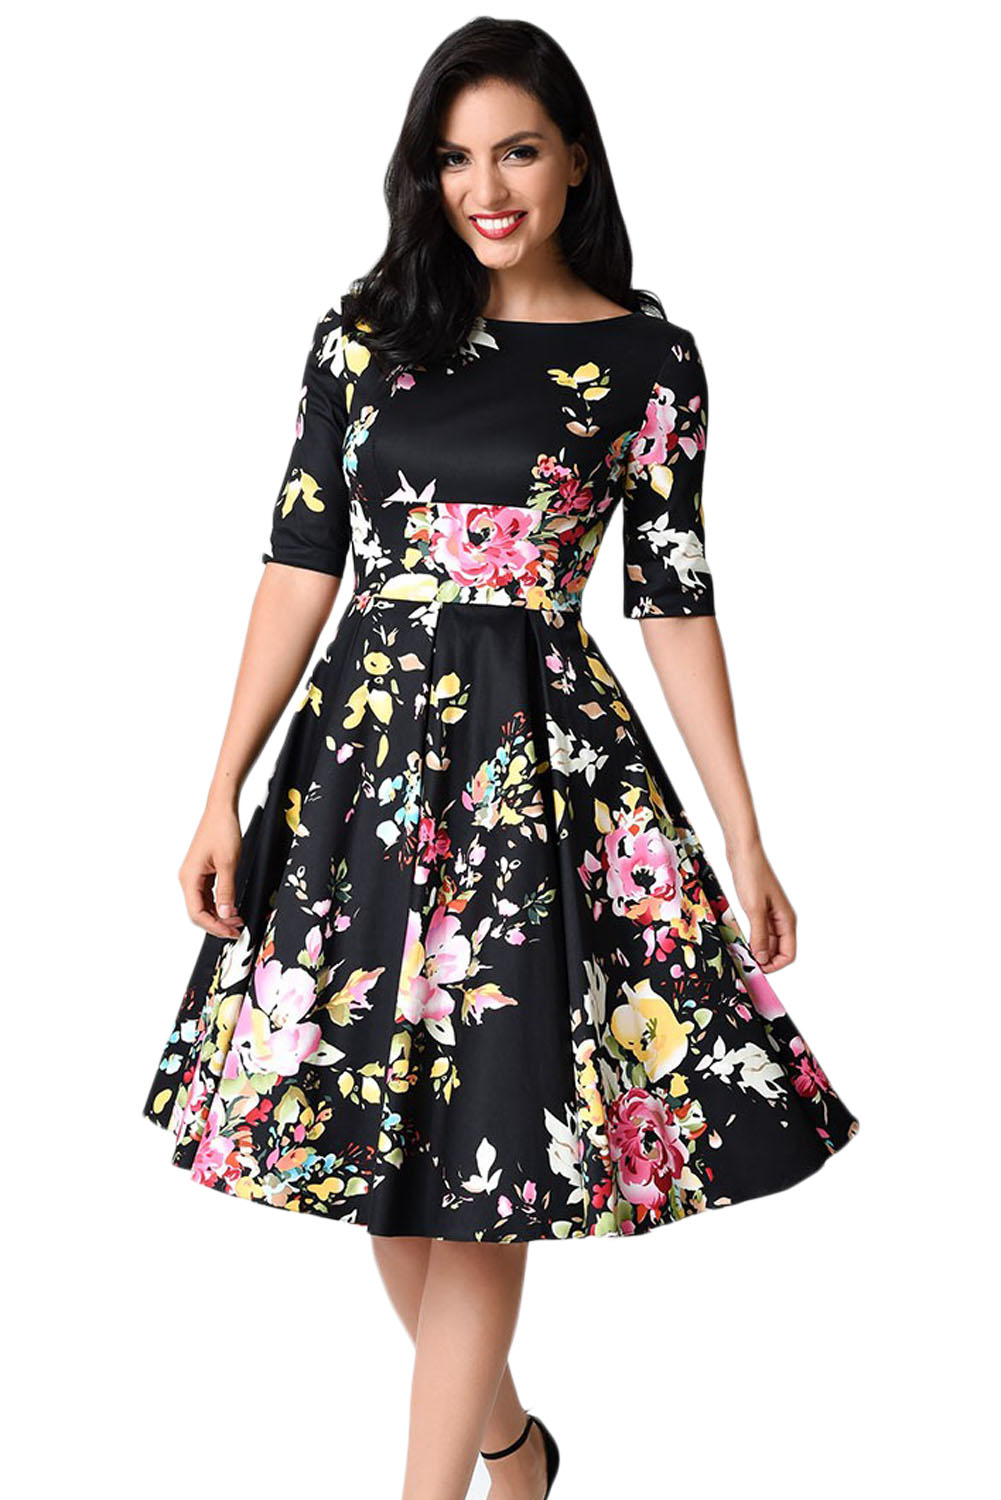 BY61702-2 Black Vintage Style Floral Half Sleeve Swing Dress